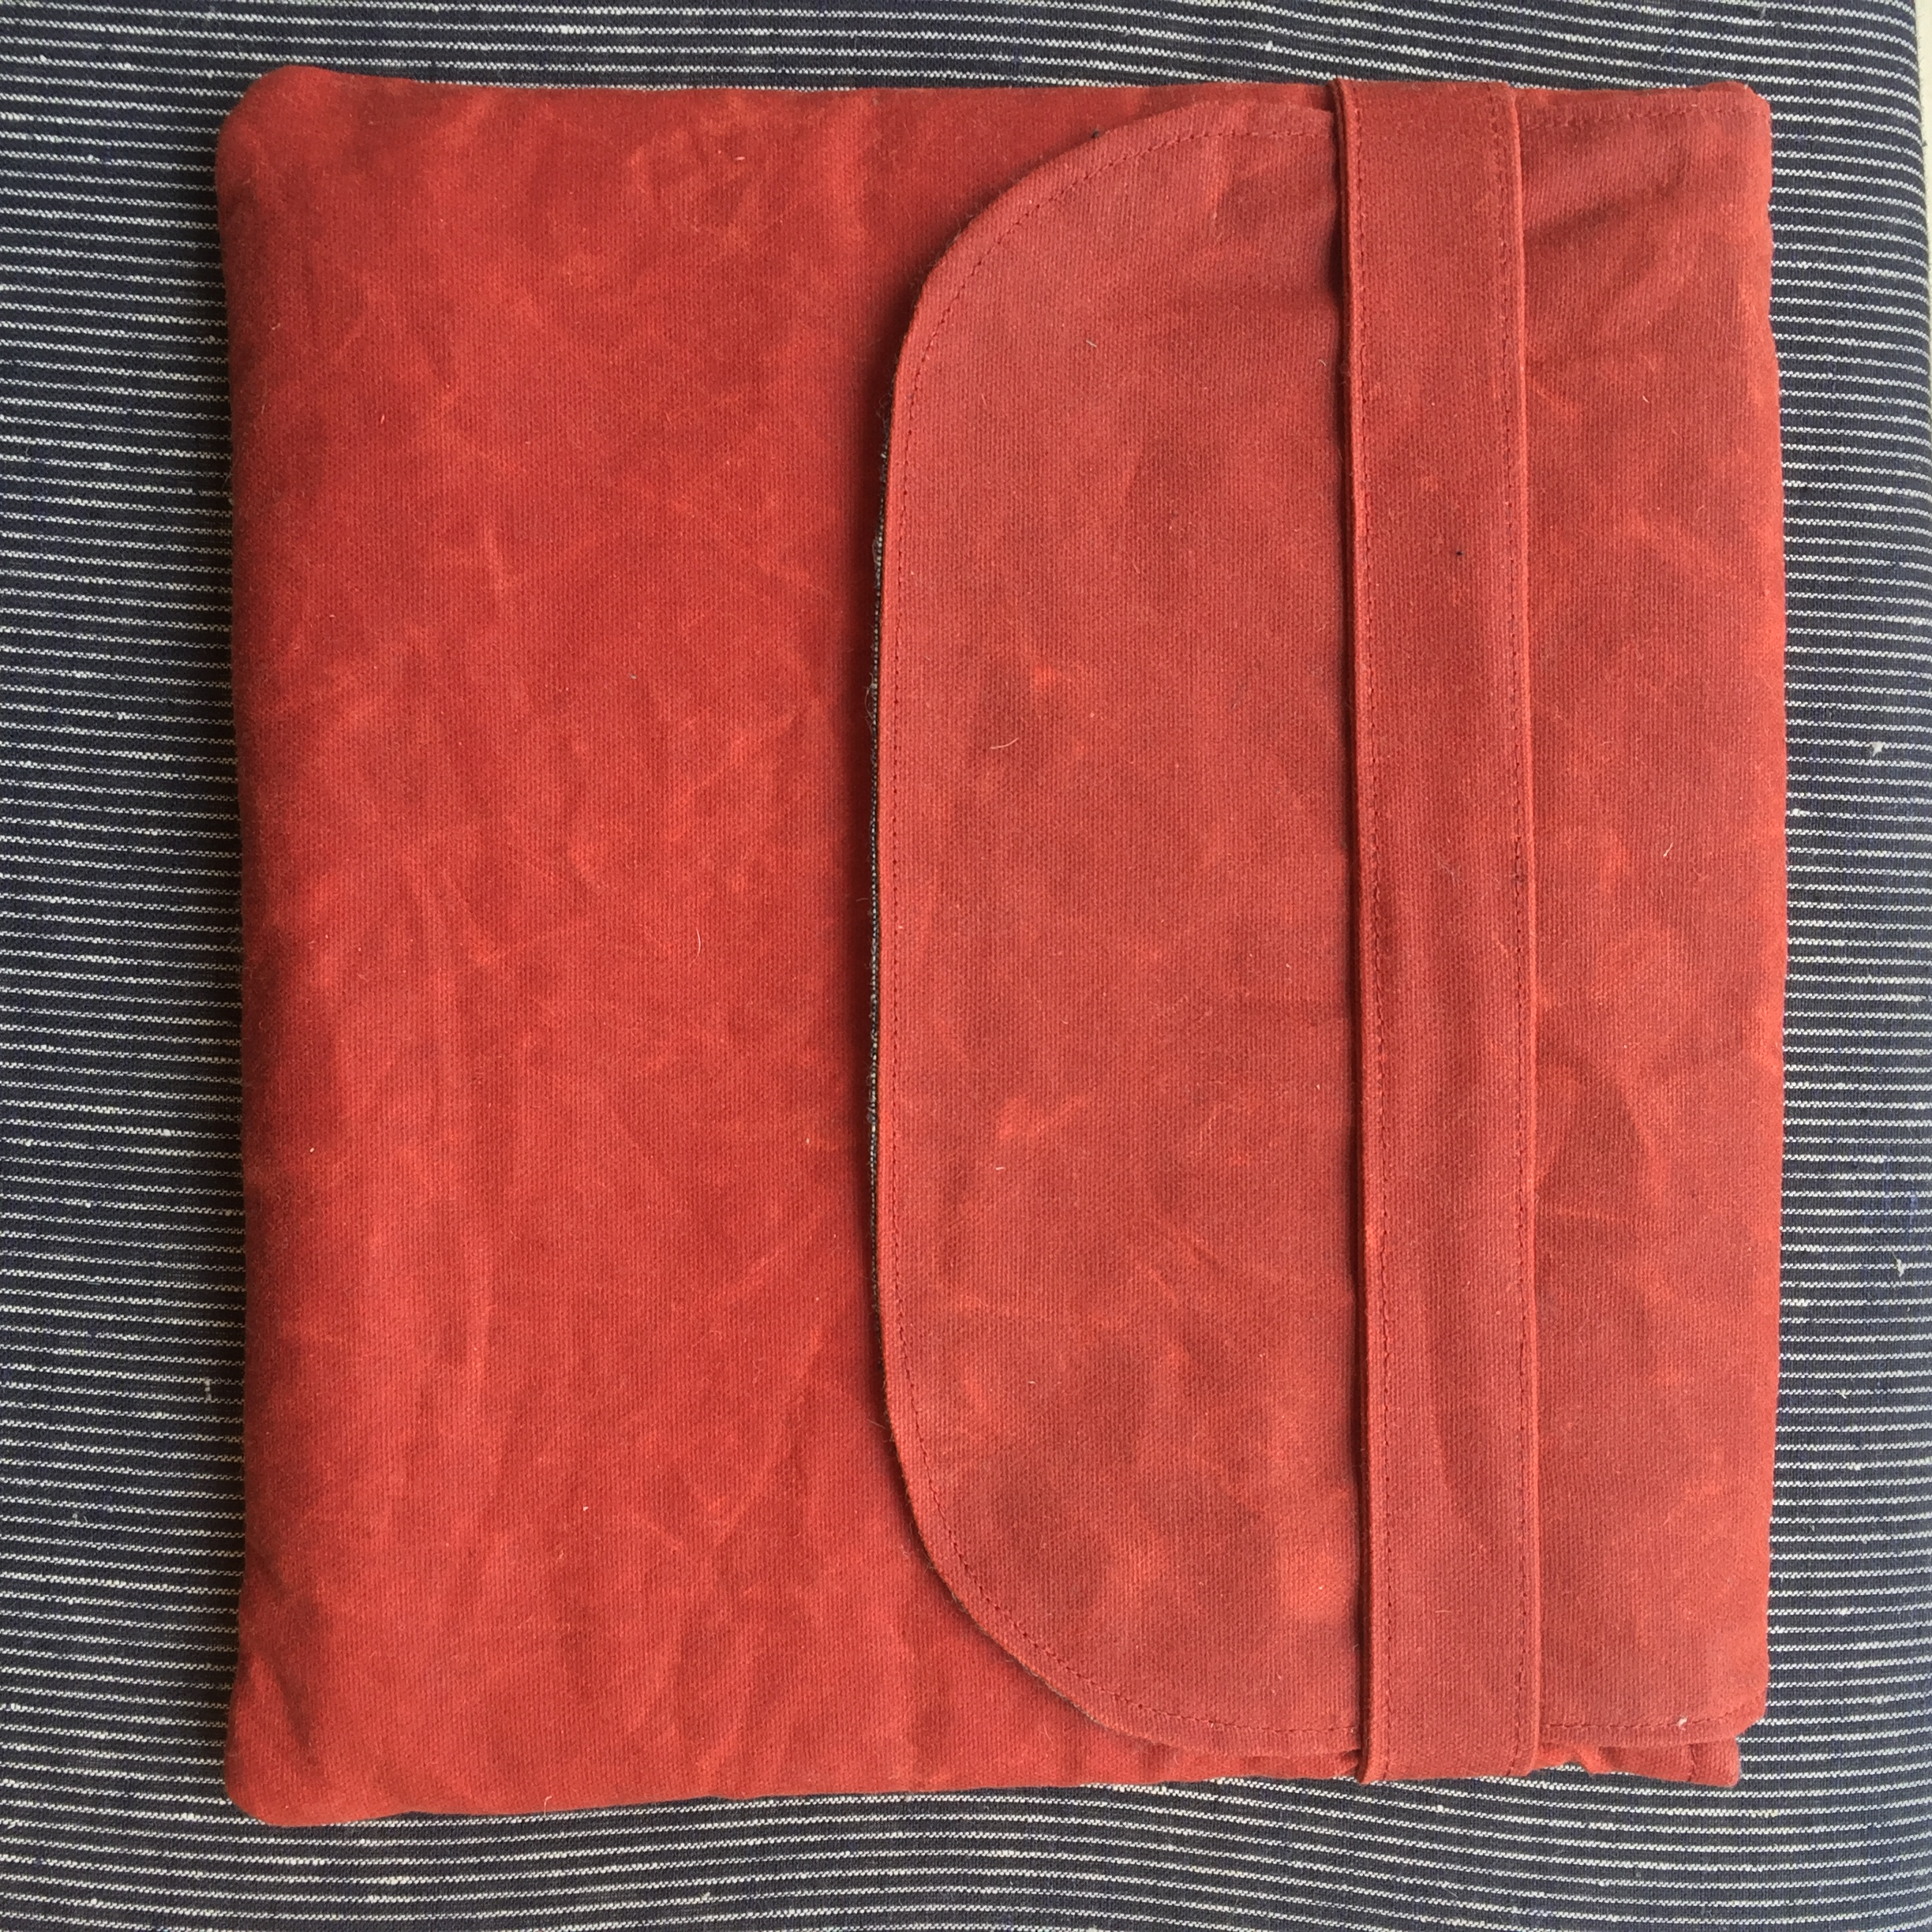 Closed Case: Easy Closure Cases For Gifts